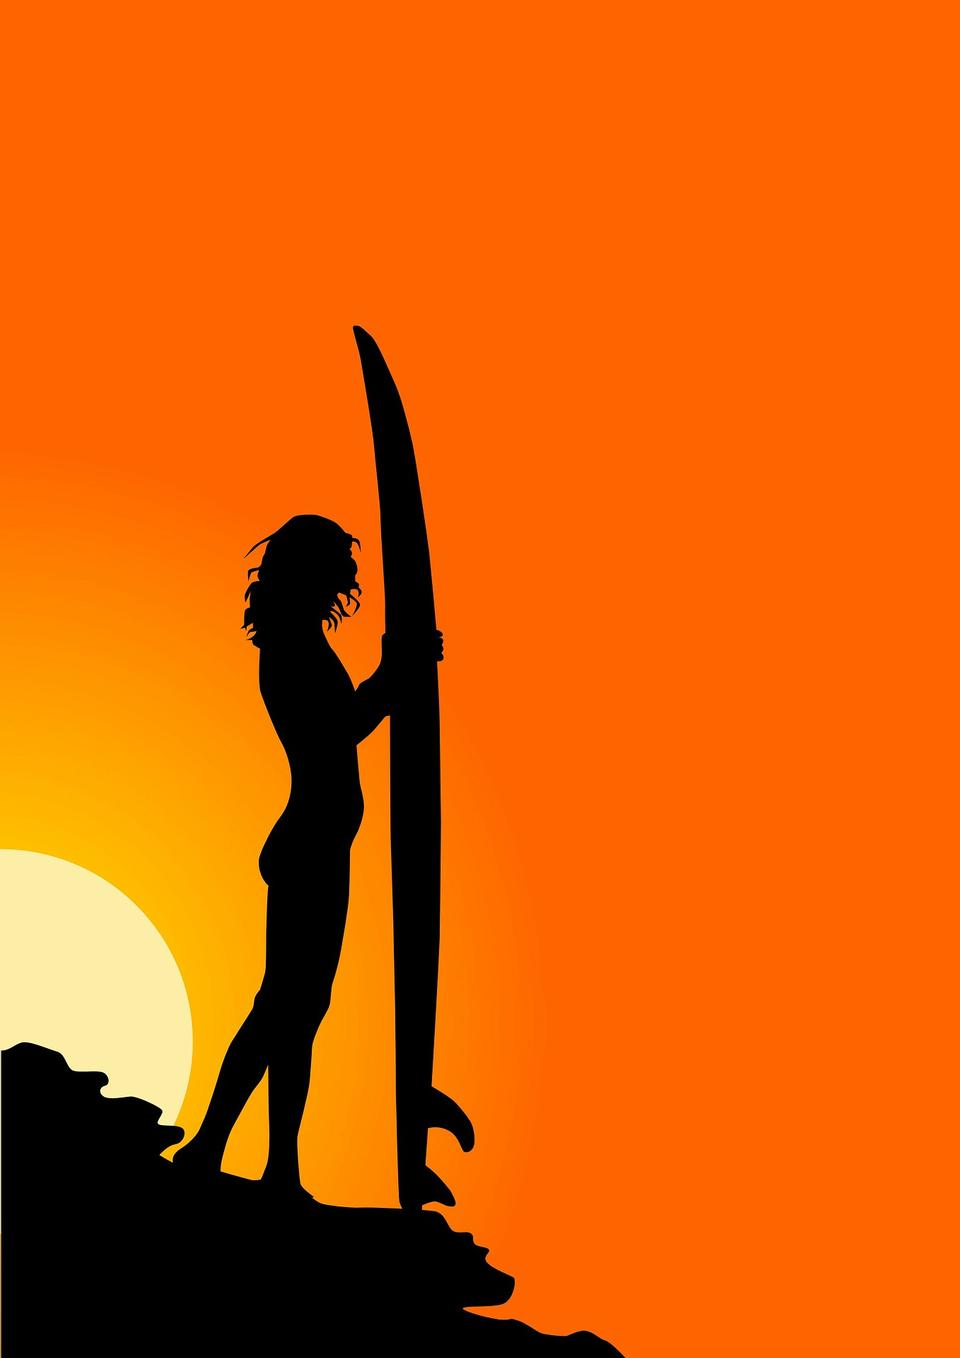 Surfer in silhouette holding long surf boards at sunset